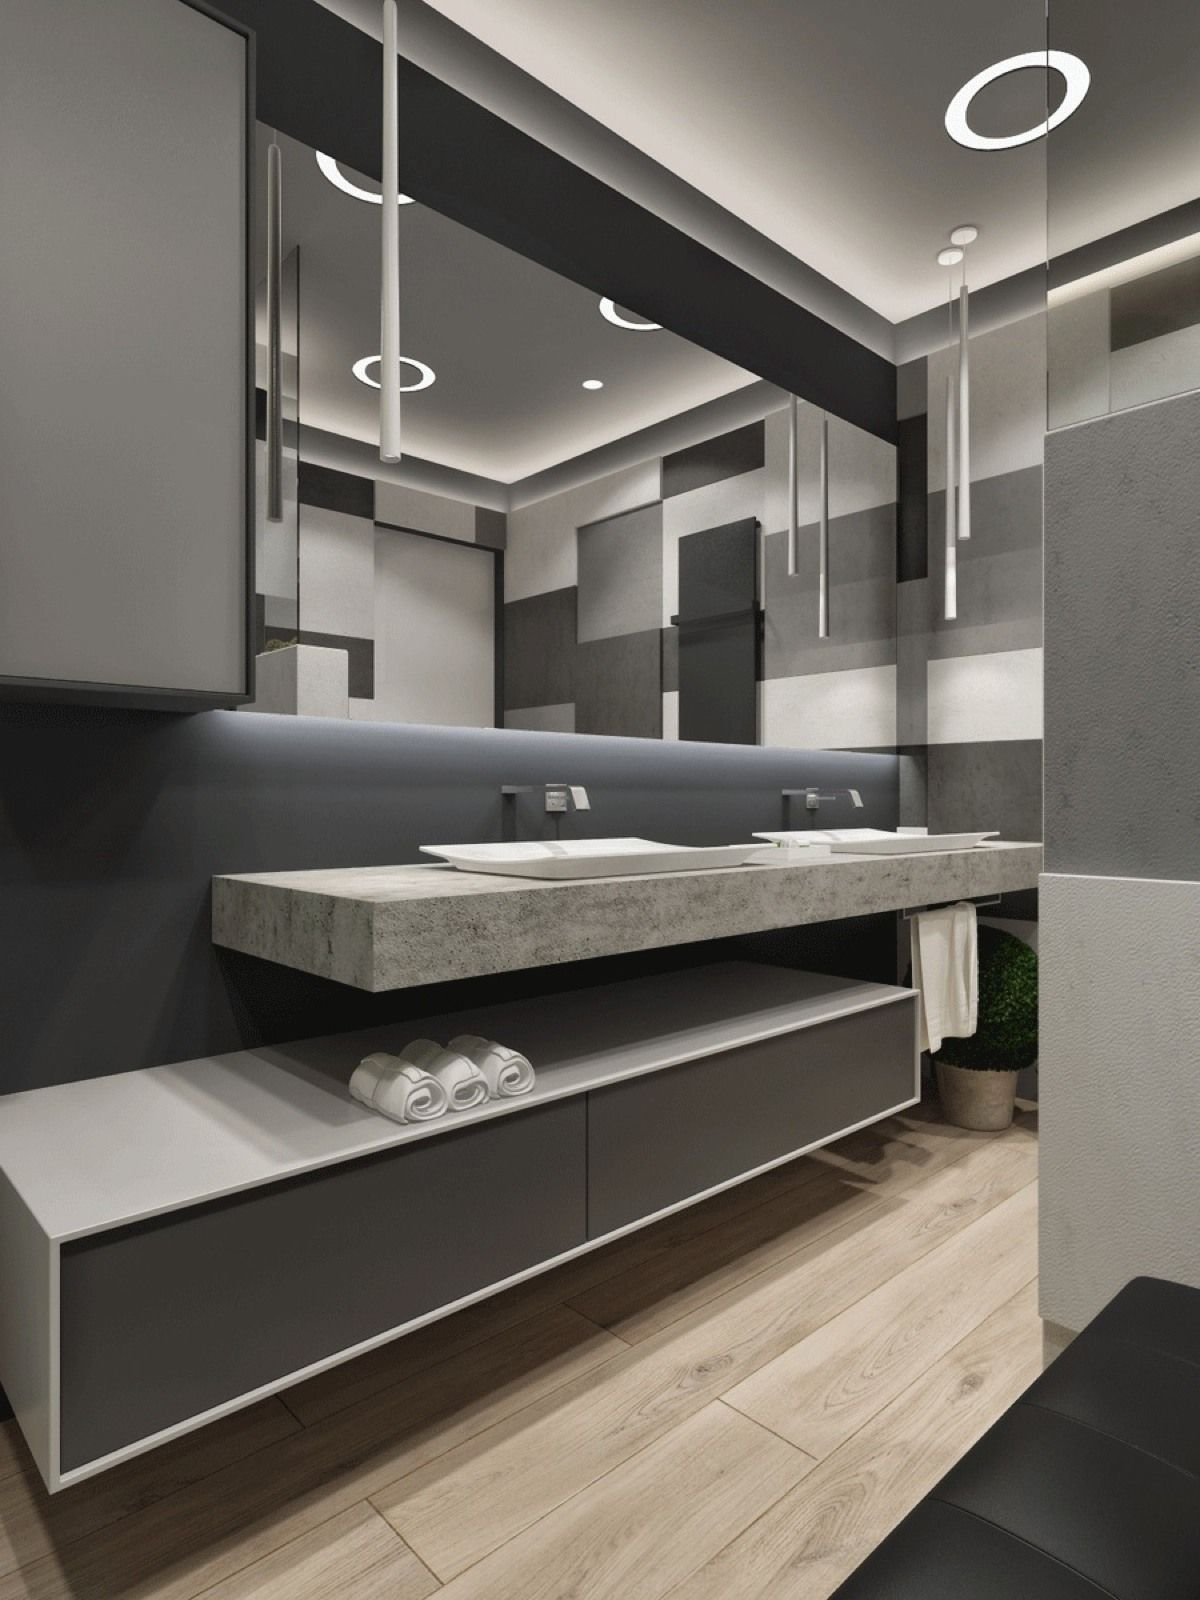 Modern Bathroom By Homify Modern: Two Apartments With Sleek Grayscale Interiors